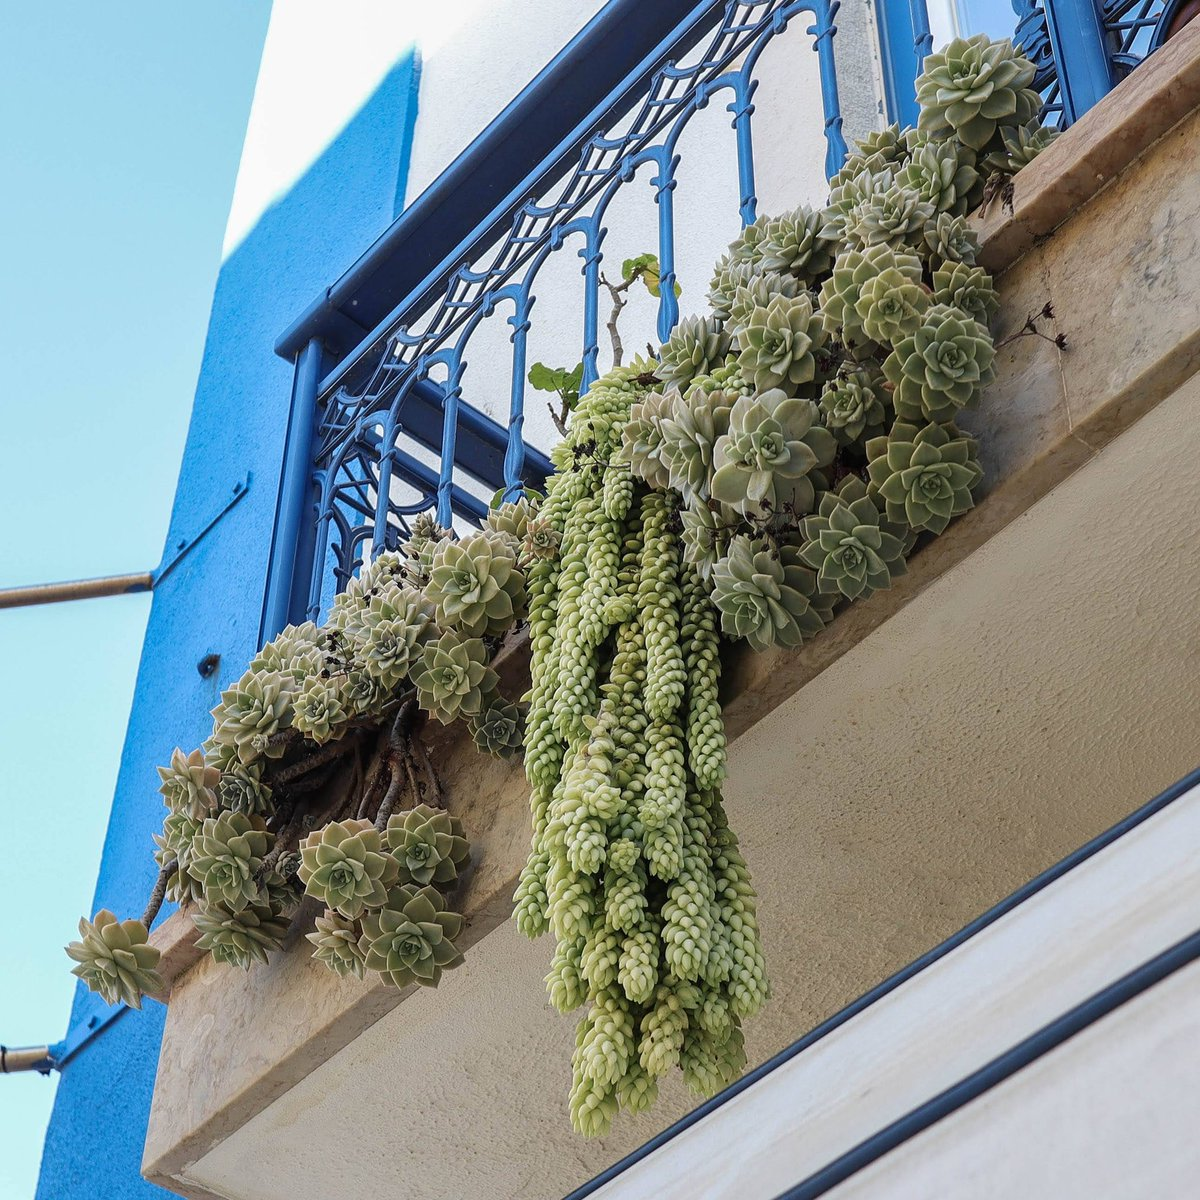 Beautiful succulents dripping from a balcony. (photo from when we could still go for a walk #lockdown #quarantine #goingforawalk #balconygarden #balconyplants #plant #plants #greenthumb #plantlover #houseplantclub #plantslover #succulents #succulent #succulentlove #succulentlife